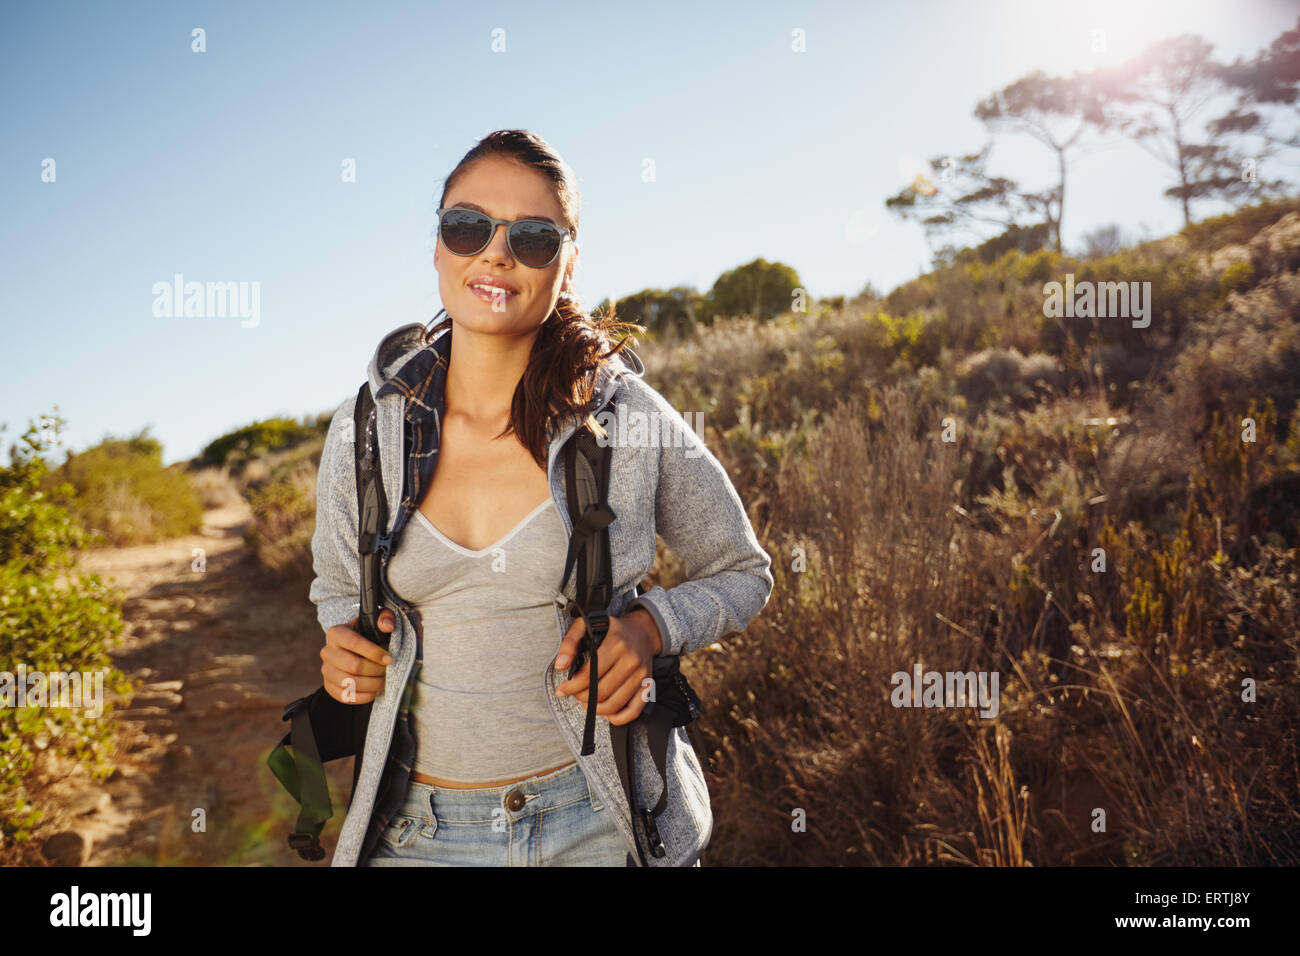 Portrait of a beautiful young hiker woman trekking in nature. Young caucasian woman wearing sunglasses looking at - Stock Image